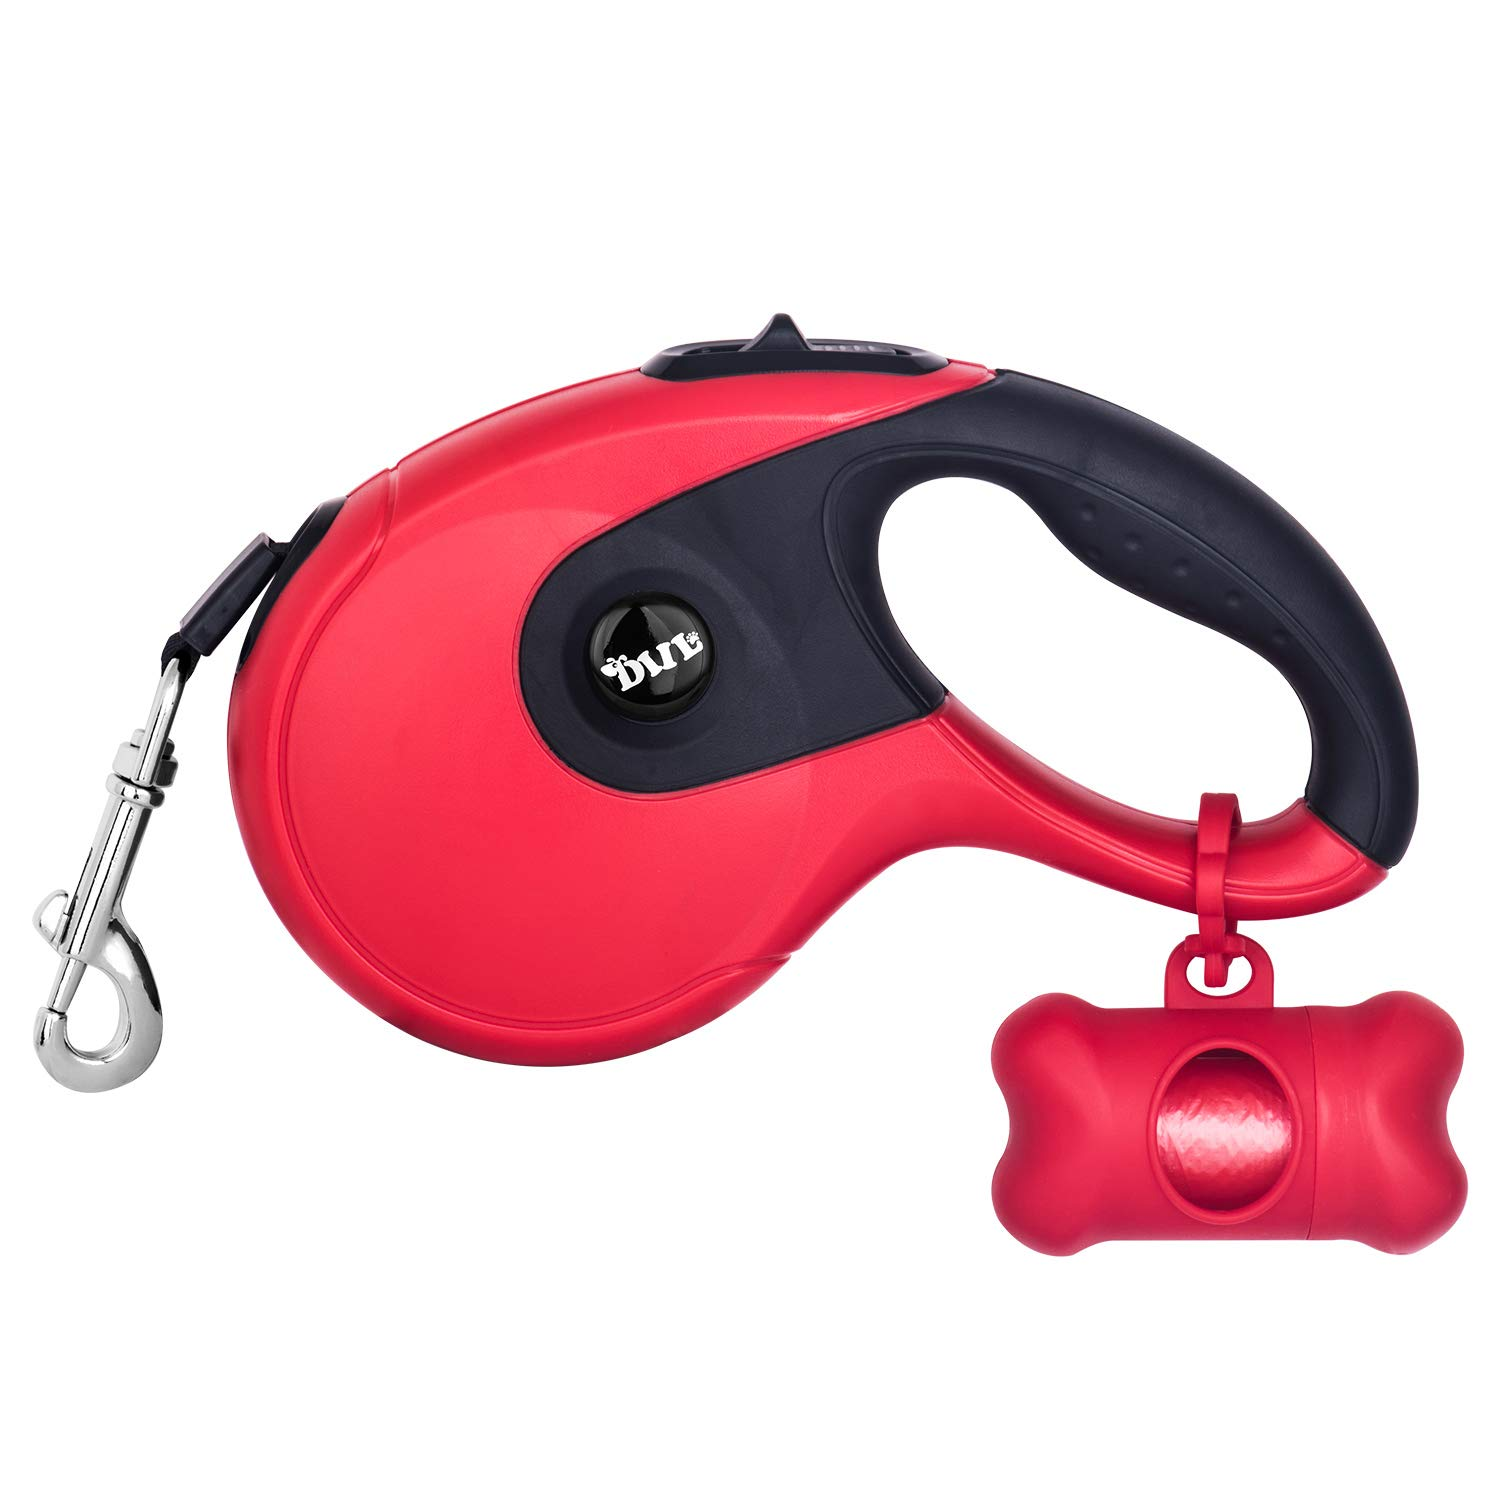 Durable Retractable Dog Leash,16 ft Dog Walking Leash for Small Medium Large Dogs up to 110lbs, 360° Tangle Free, One Button Break & Lock, Dog Waste Dispenser and Bags Included (red) by LEPSO